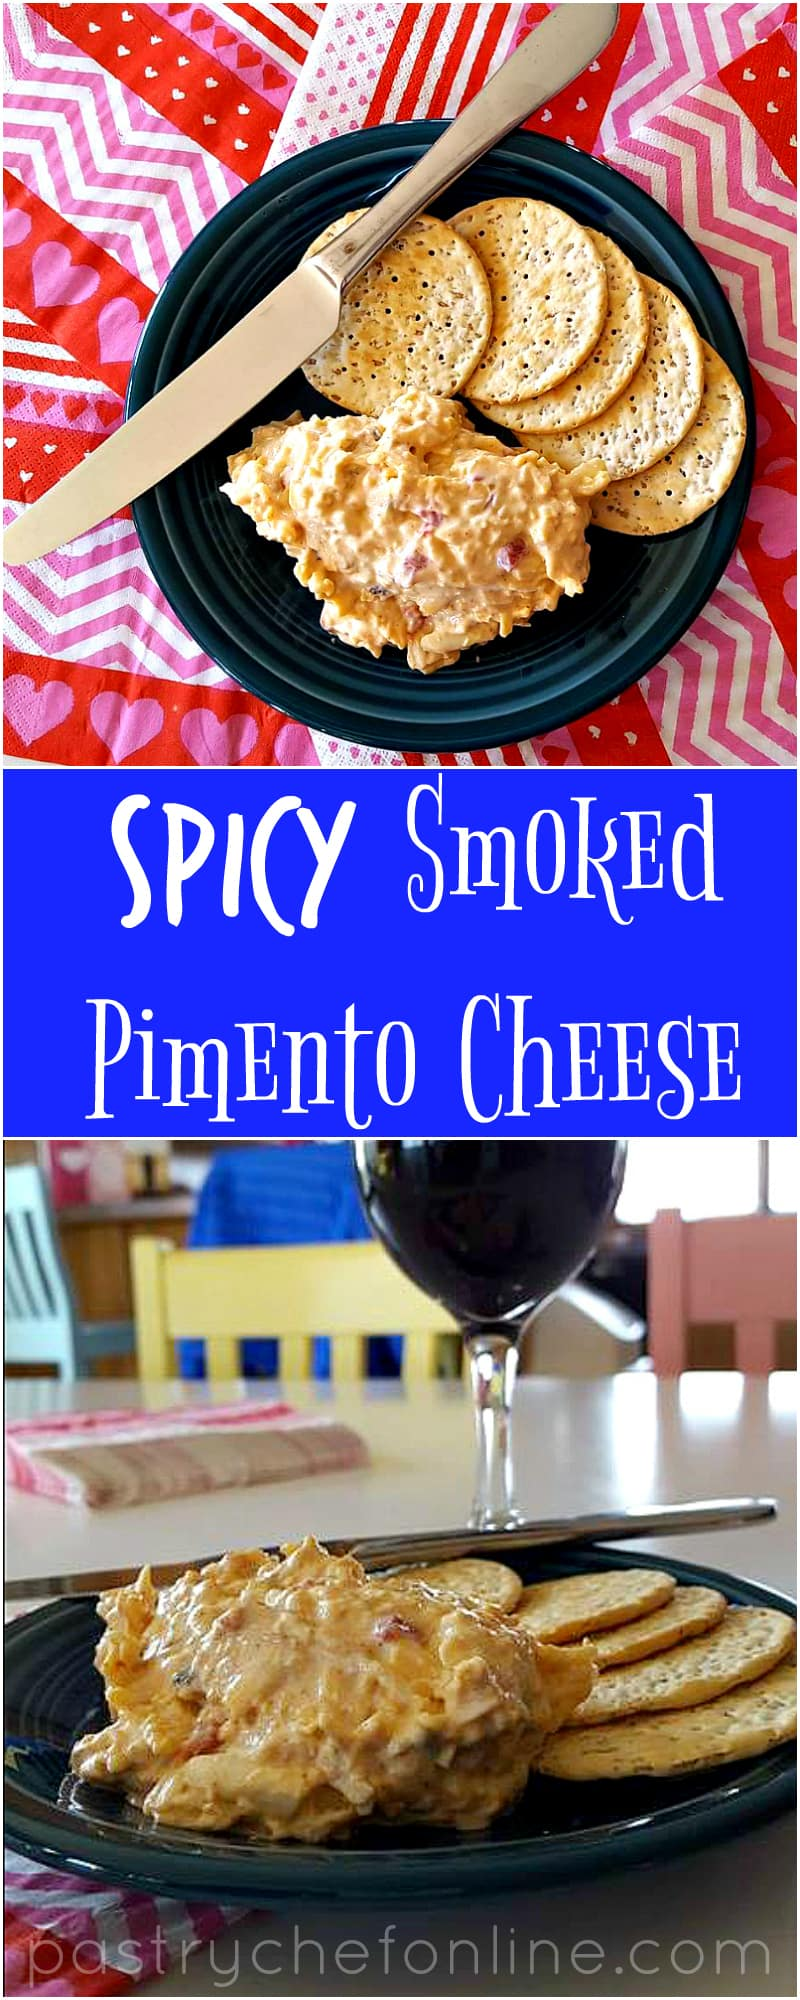 This spicy smoked pimento cheese is the perfect appetizer on its own, hot or cold. It's also great as a burger condiment or in a grilled cheese. Enjoy! | pastrychefonline.com